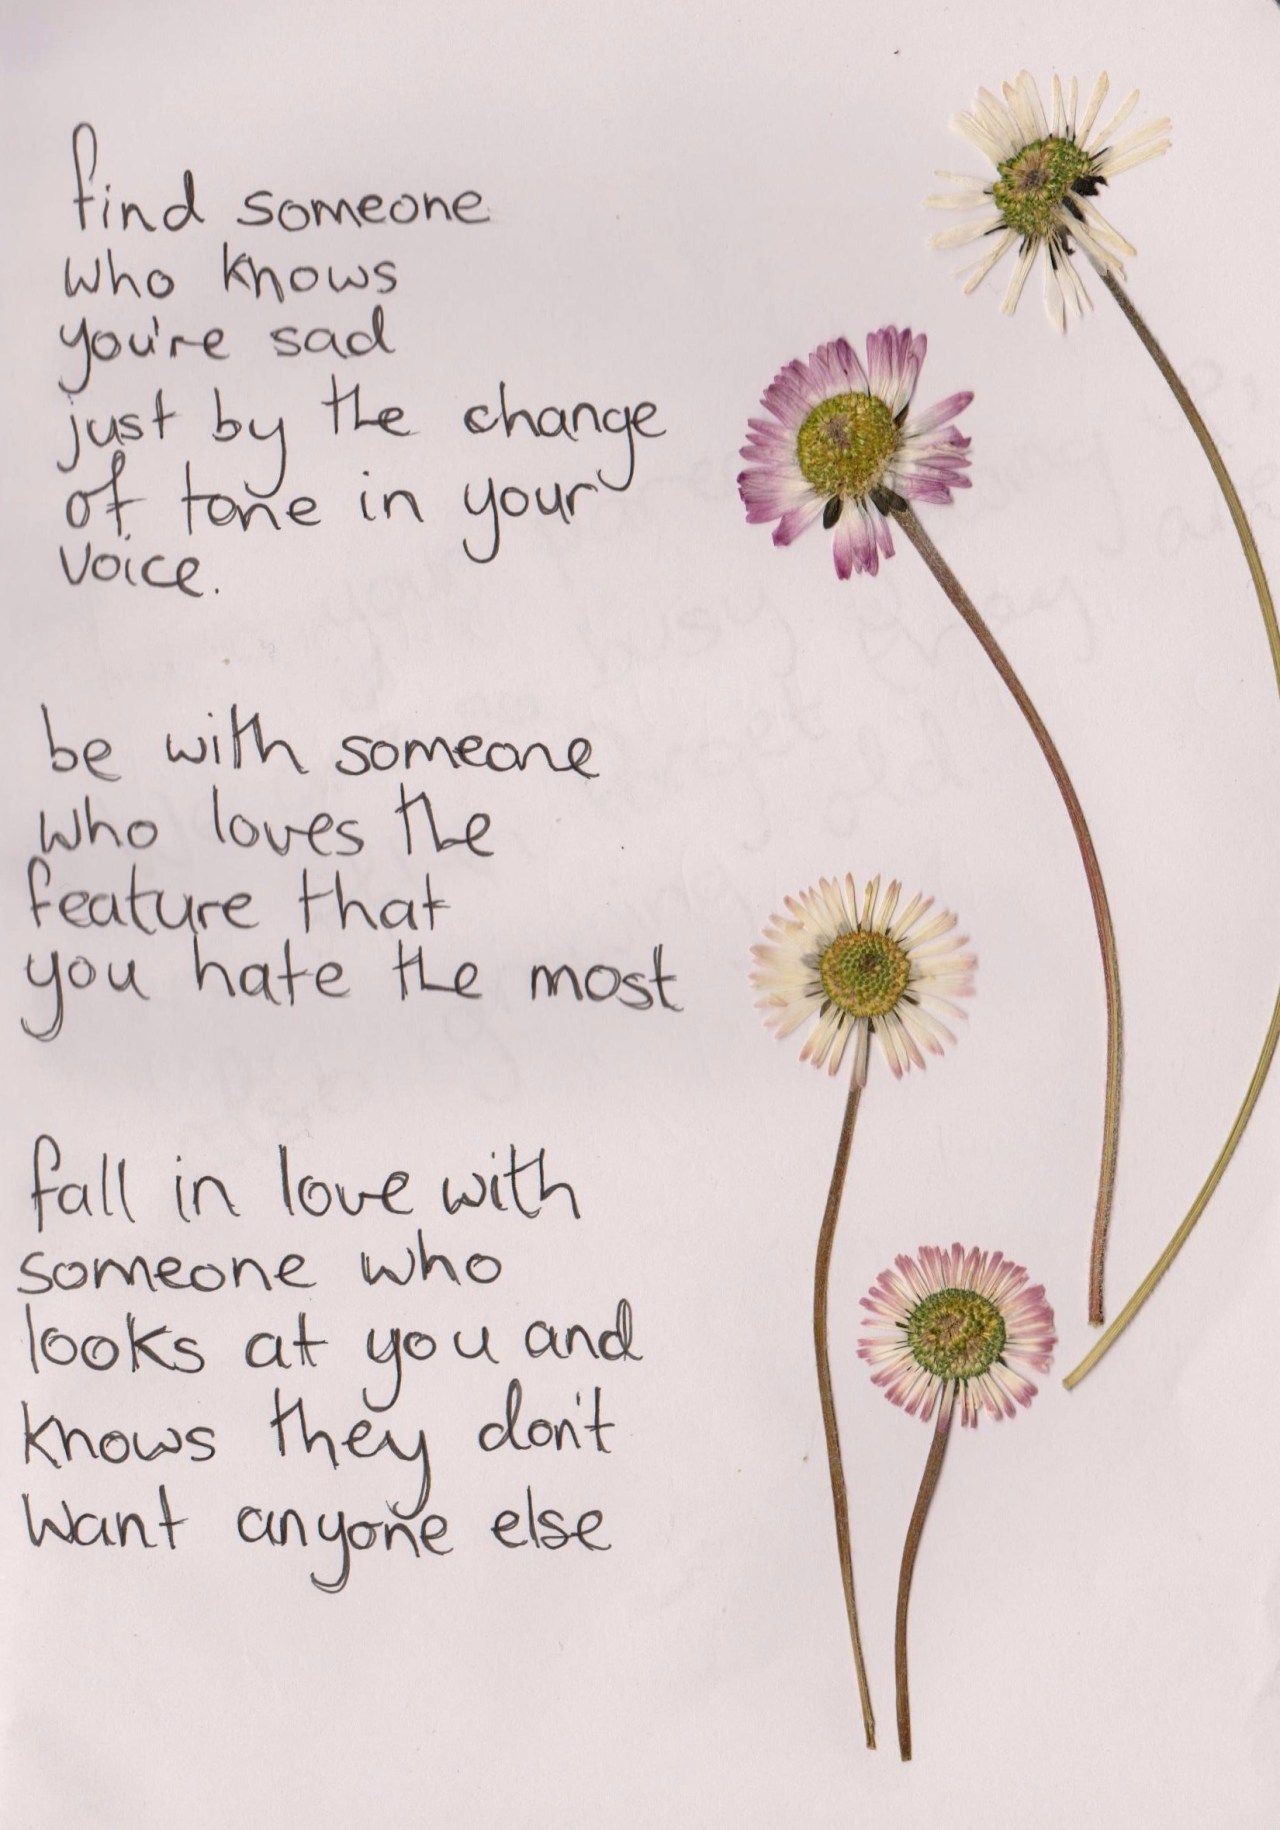 """whatever-you-write: """" find someone who knows you're sad just by the change of tone in your voice be with someone who loves the feature that you hate the most fall inlove with someone who looks at you..."""